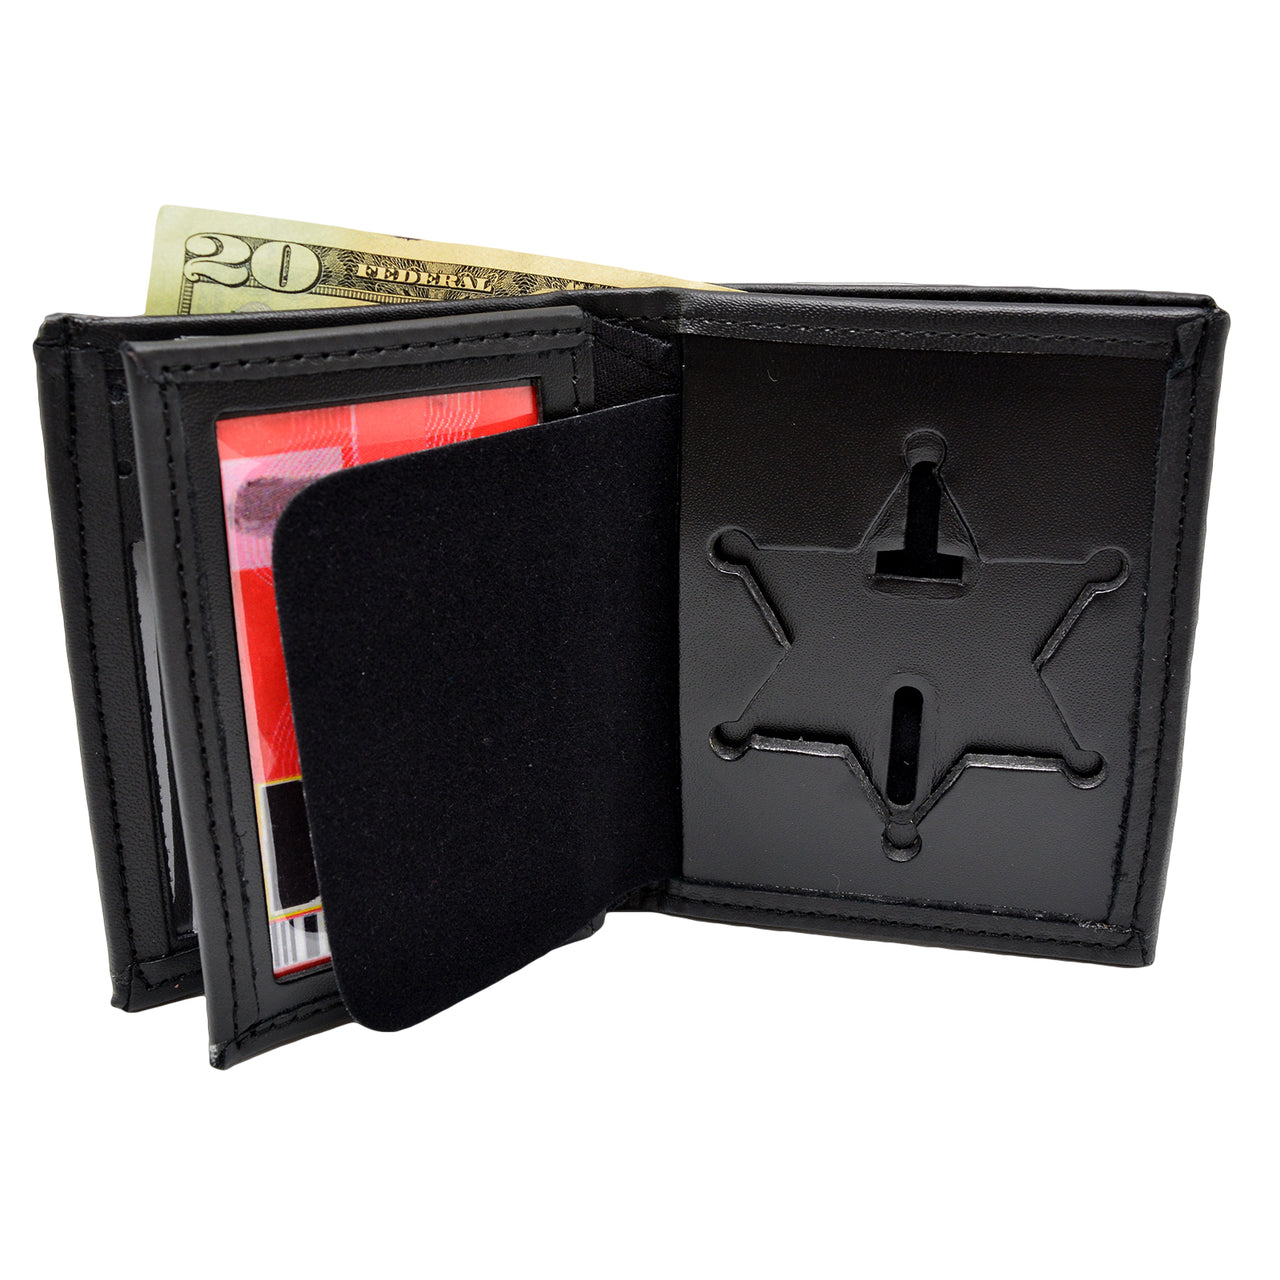 Perfect Fit Bi fold Wallet with Credit Card Slots and ID Window (BSO)